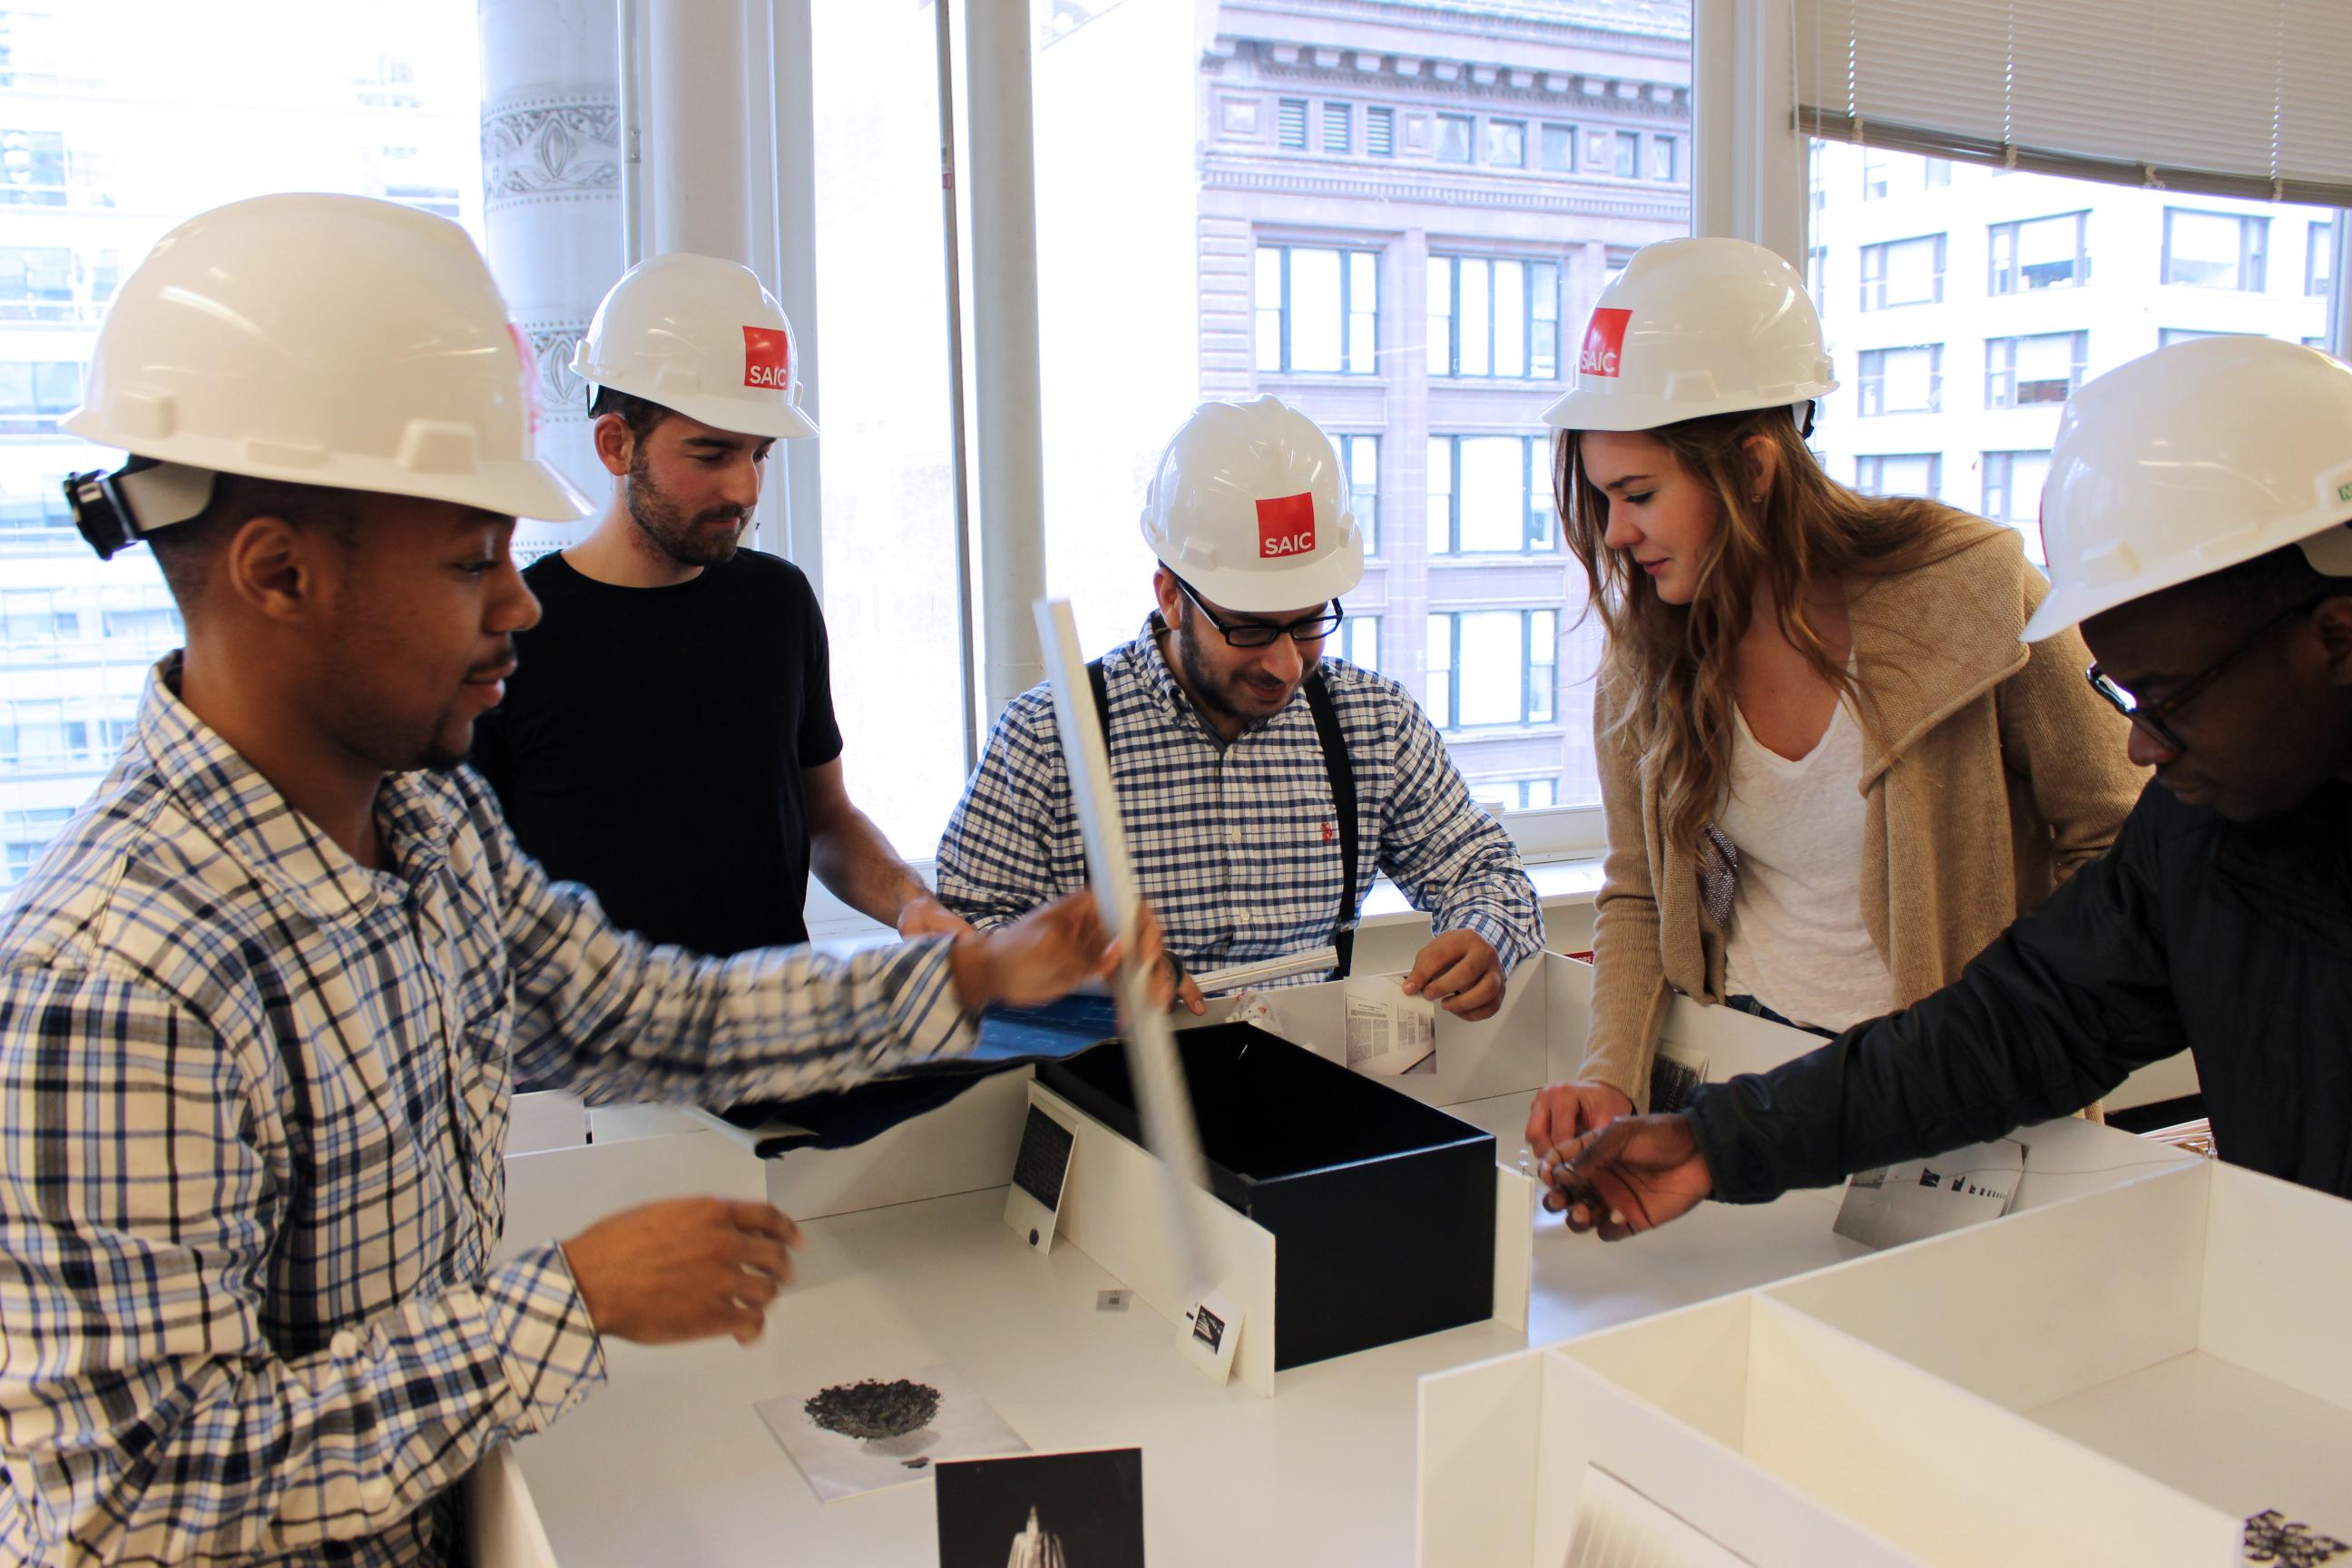 Five people wearing hard hats work on a model of the MCA's galleries.